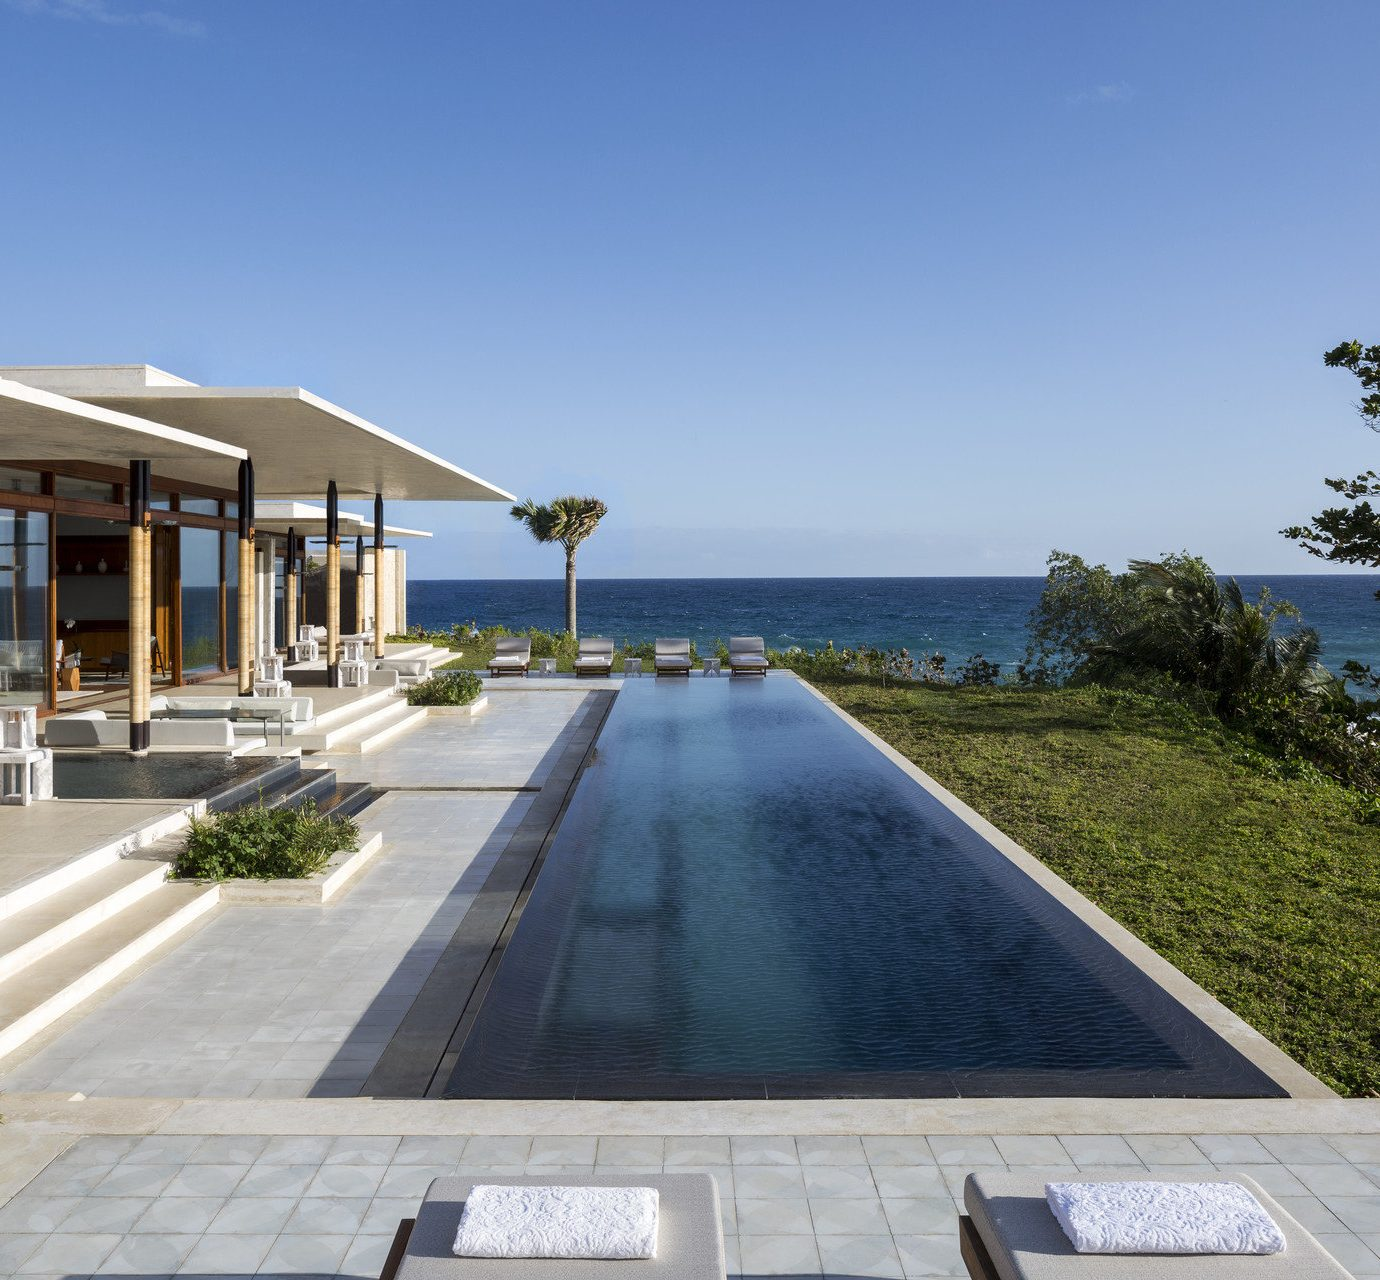 Playa Grande In Dominican Republic - Boutique Luxury Hotel And Villa